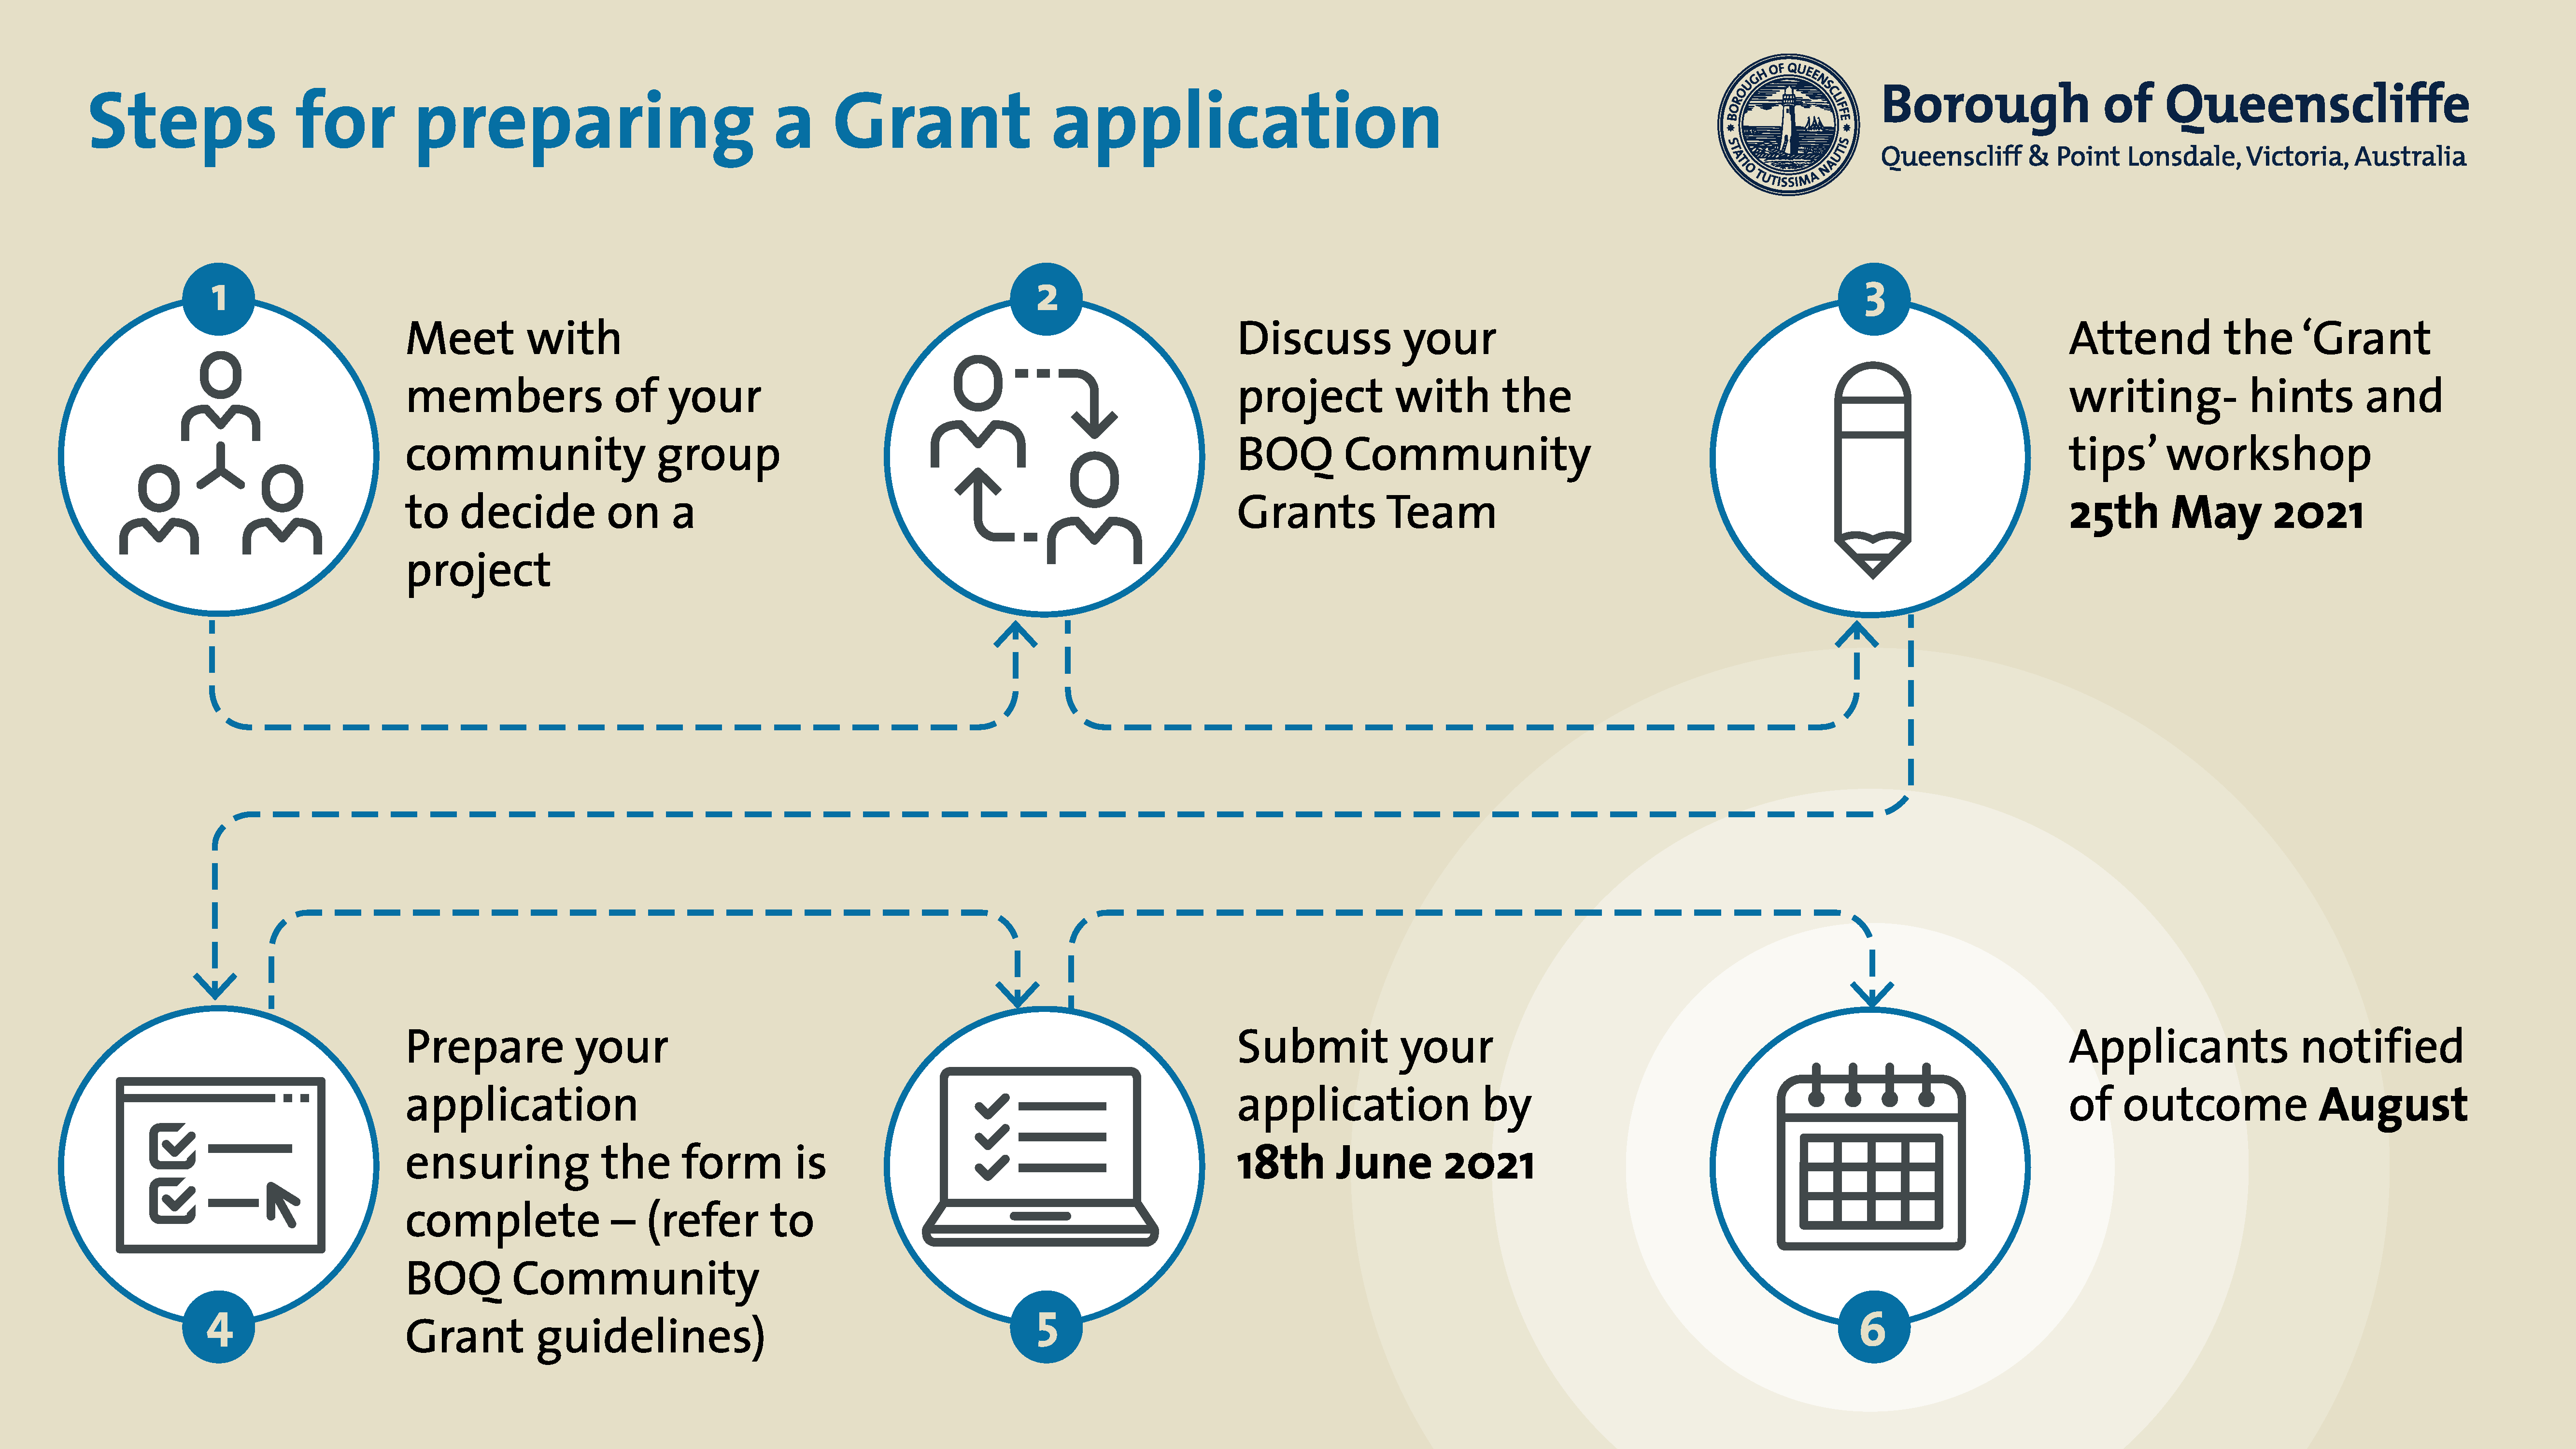 Flowchart showing the steps for preparing a grant application